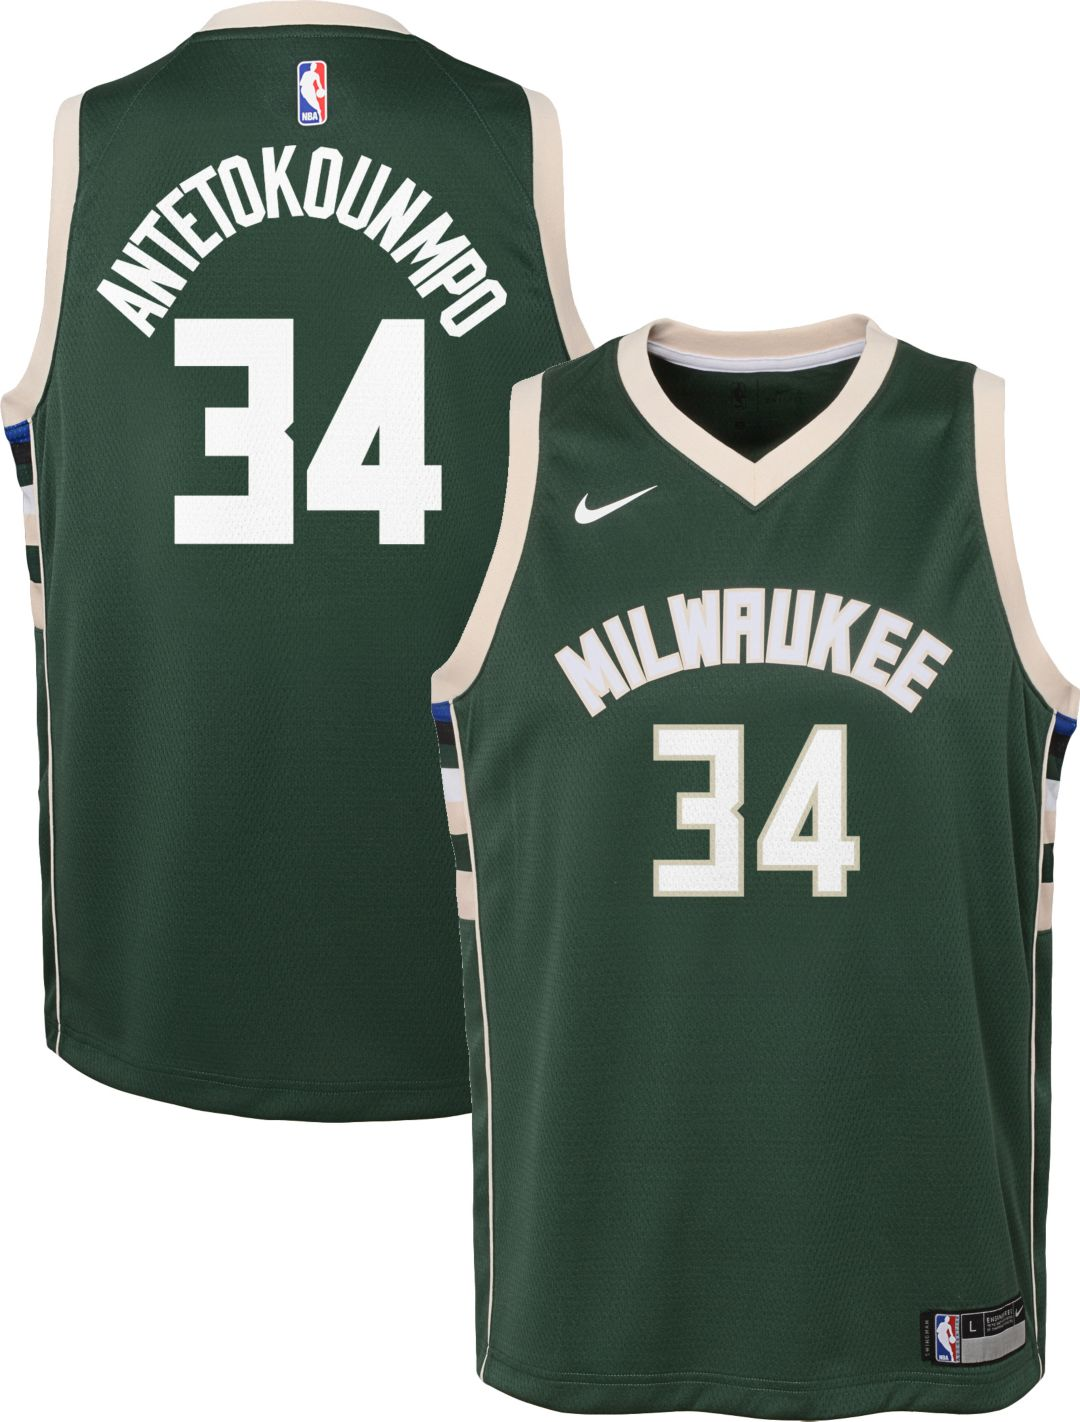 size 40 5a7a0 fa418 Nike Youth Milwaukee Bucks Giannis Antetokounmpo #34 Green Dri-FIT Swingman  Jersey